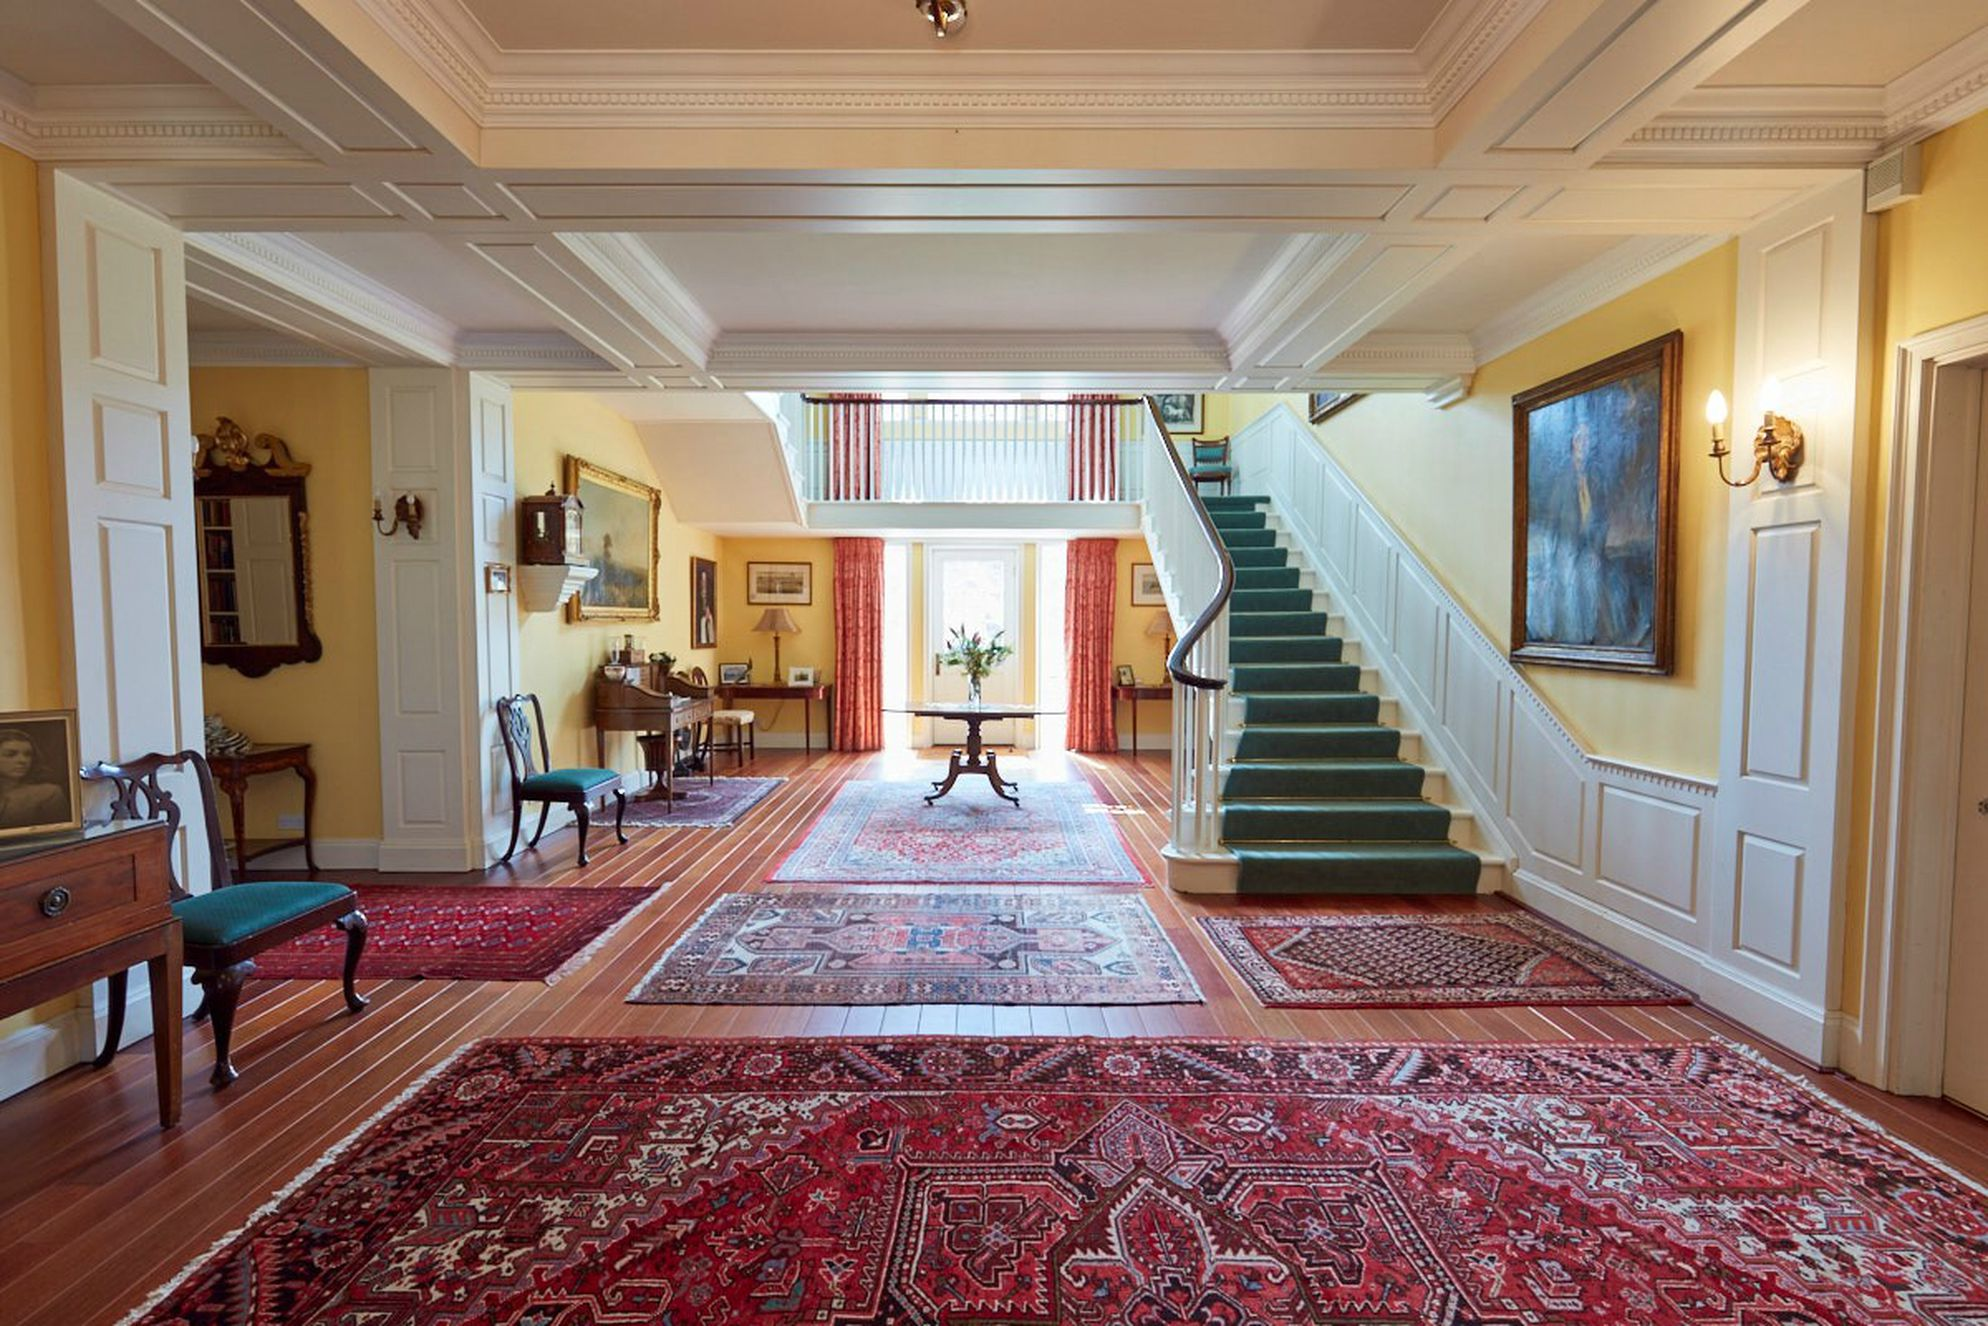 View of large, grand entrance hall at Swinburne Castle in Hexham, Northumberland with lots of tapestry rugs and stairs leading upstairs